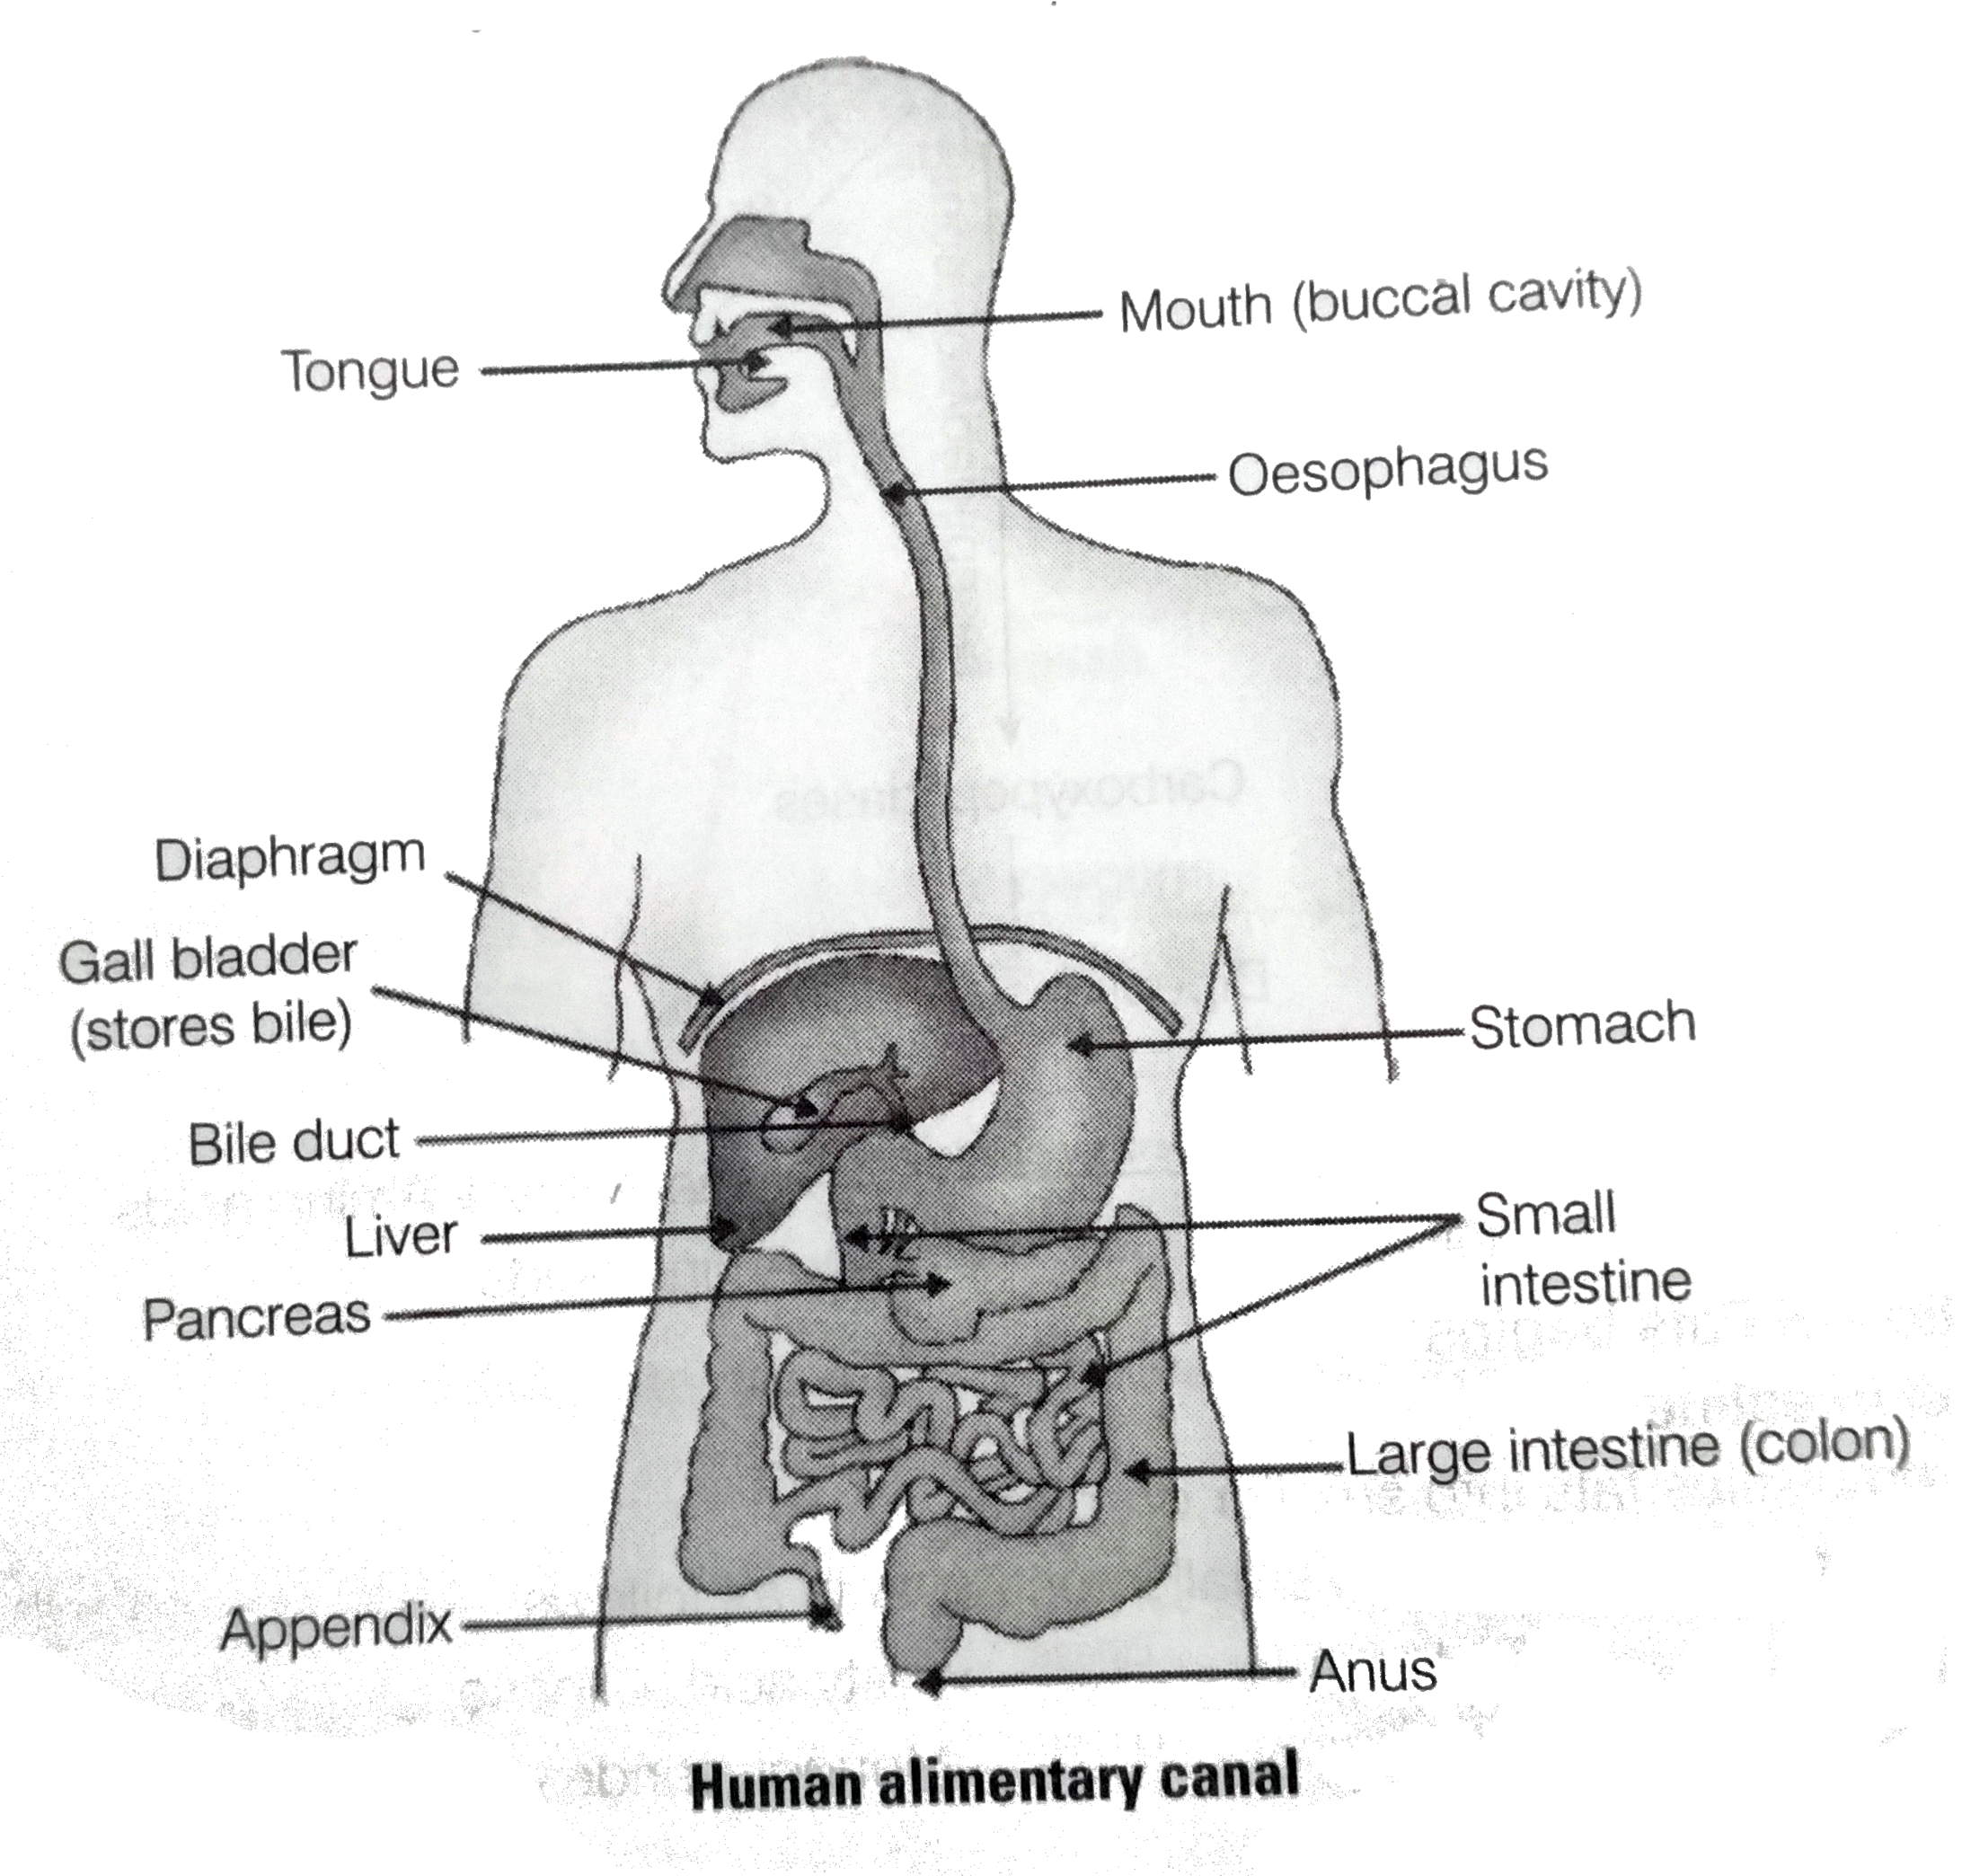 Draw The Diagram Of Alimentary Canal Of Man And Label The